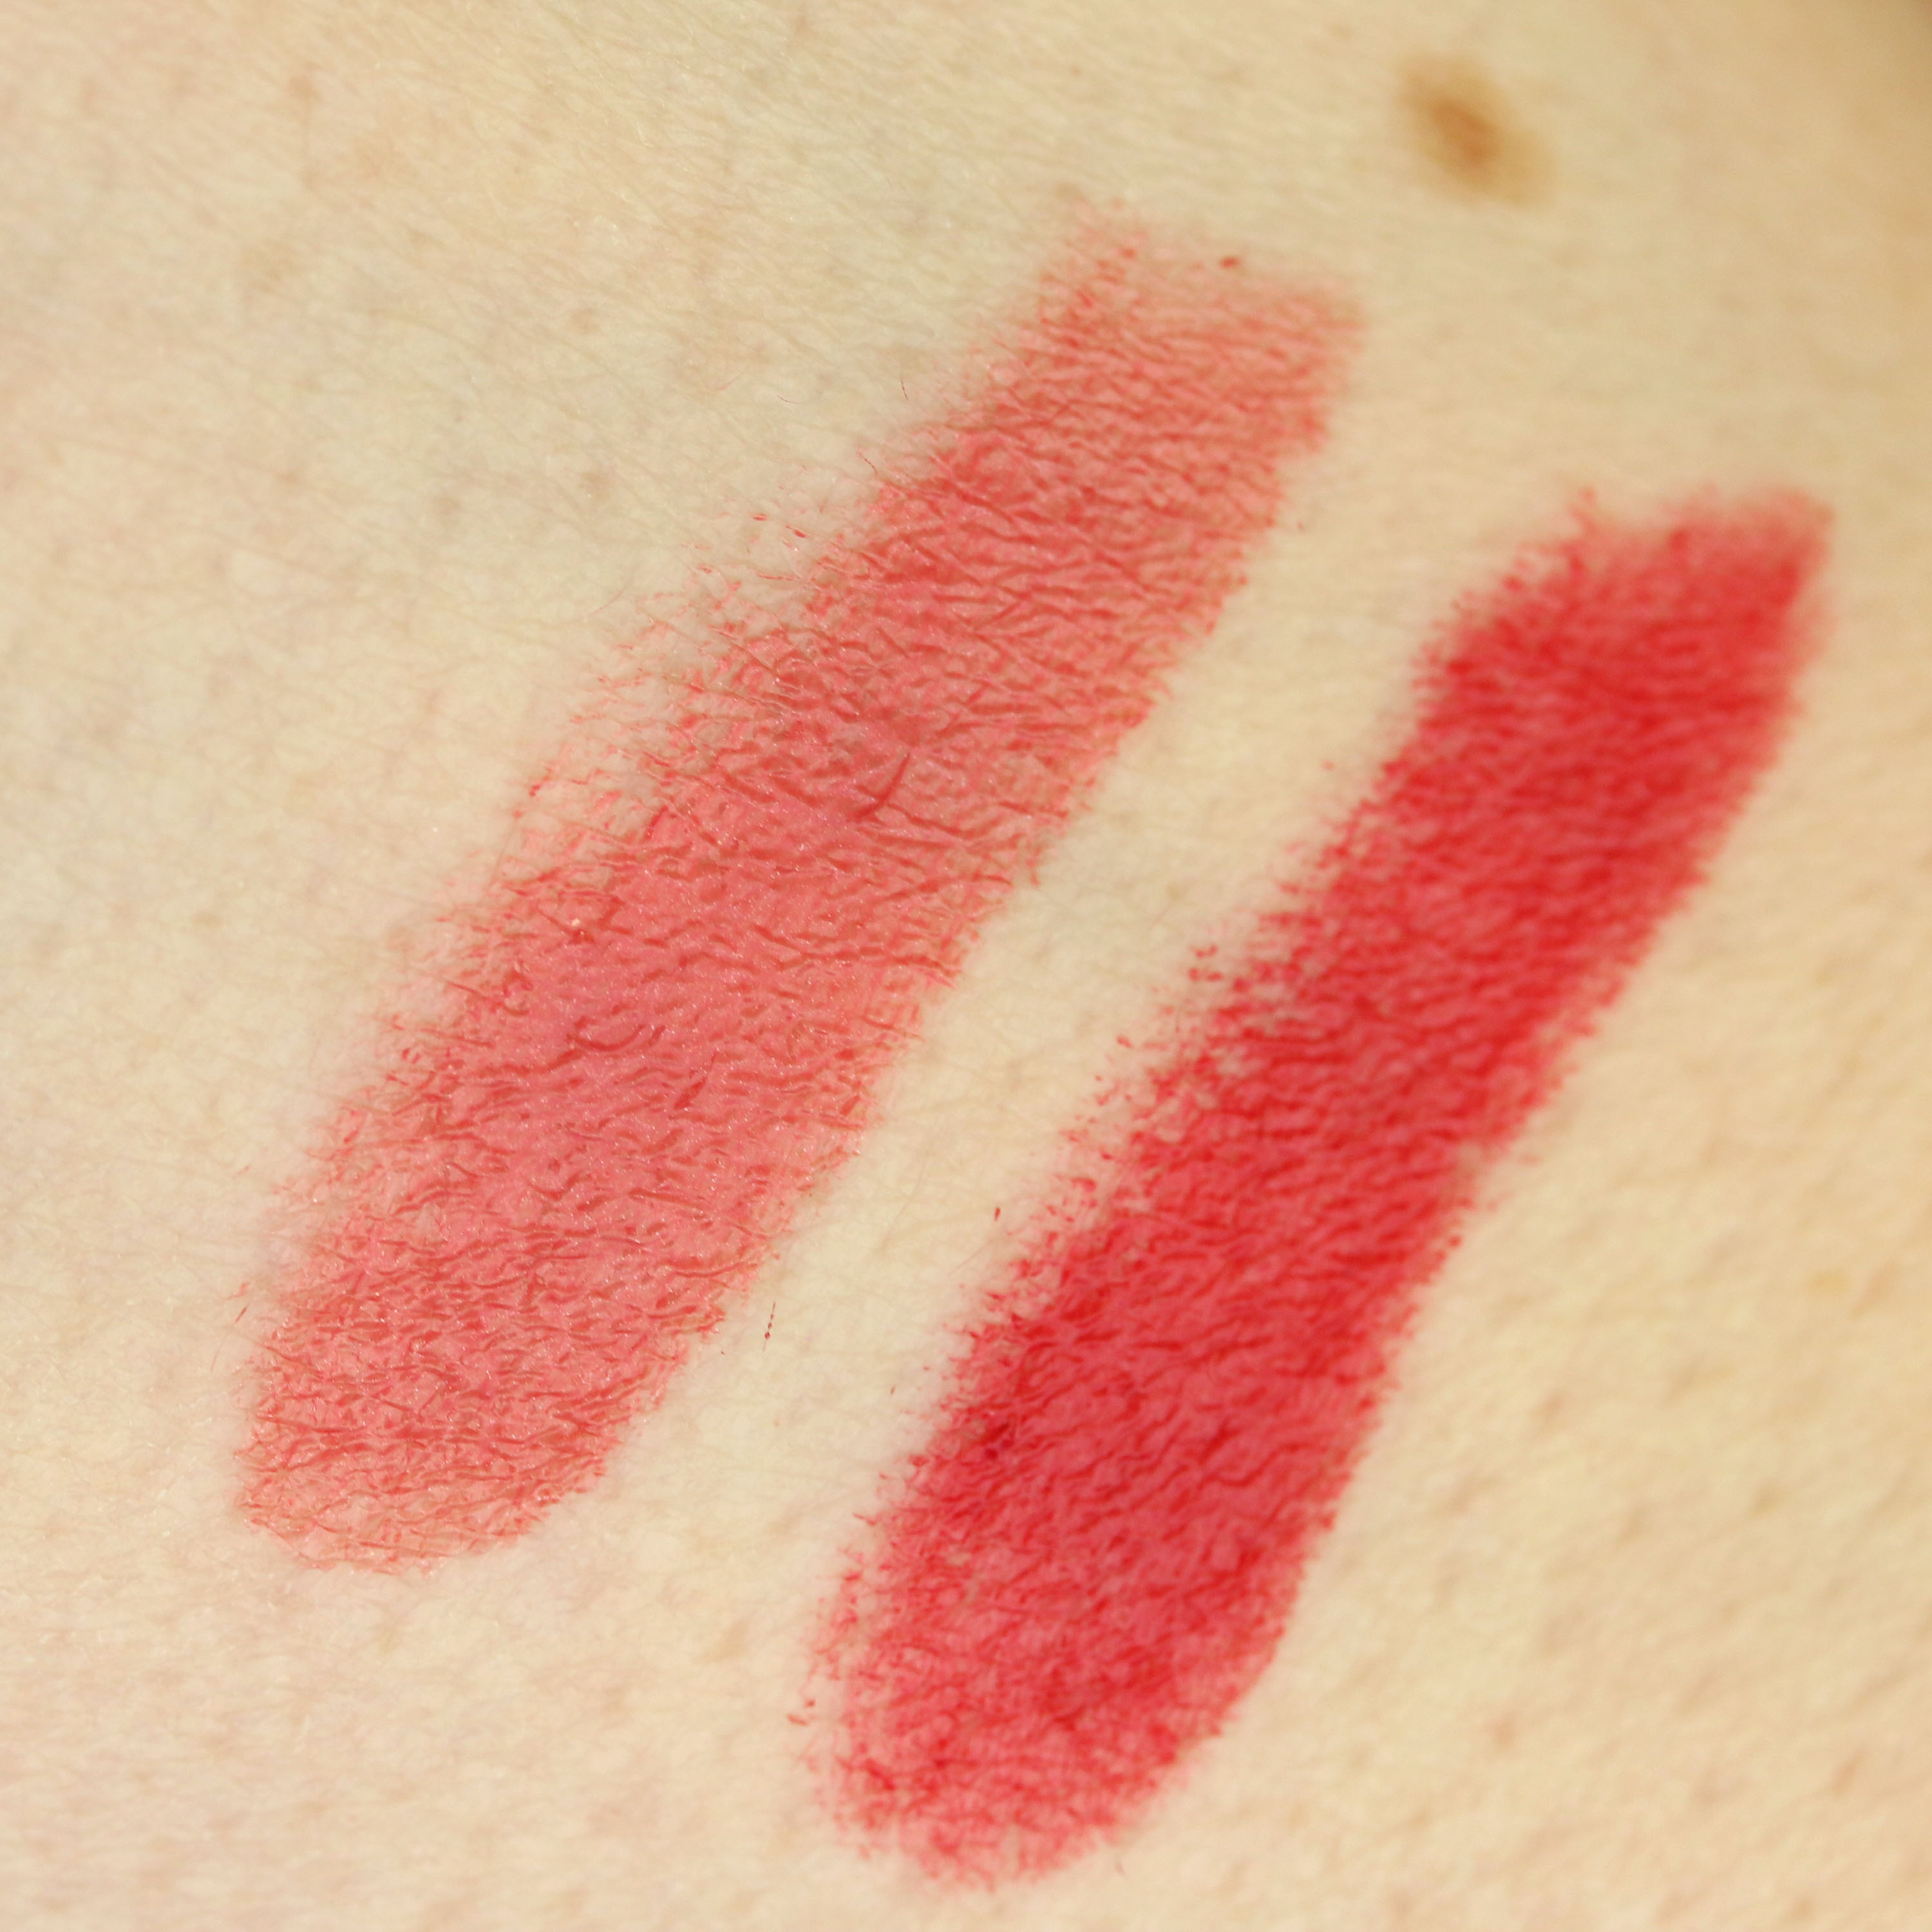 Rouge Coco Style Swatches InnenAussen